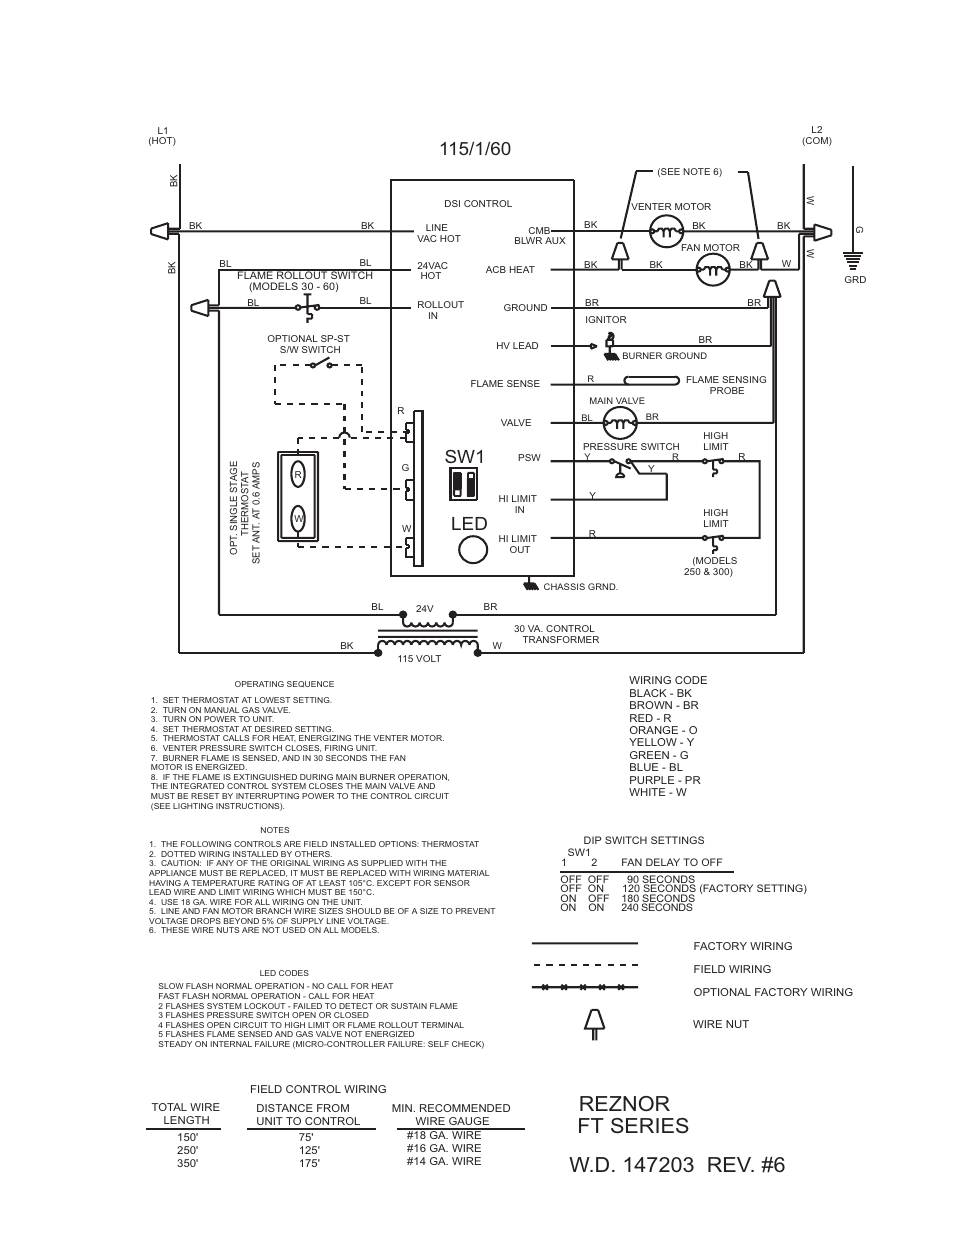 reznor ft unit installation manual page13?resize\\\=665%2C861 cr285b15 wiring diagram crate wiring diagrams collection  at gsmx.co